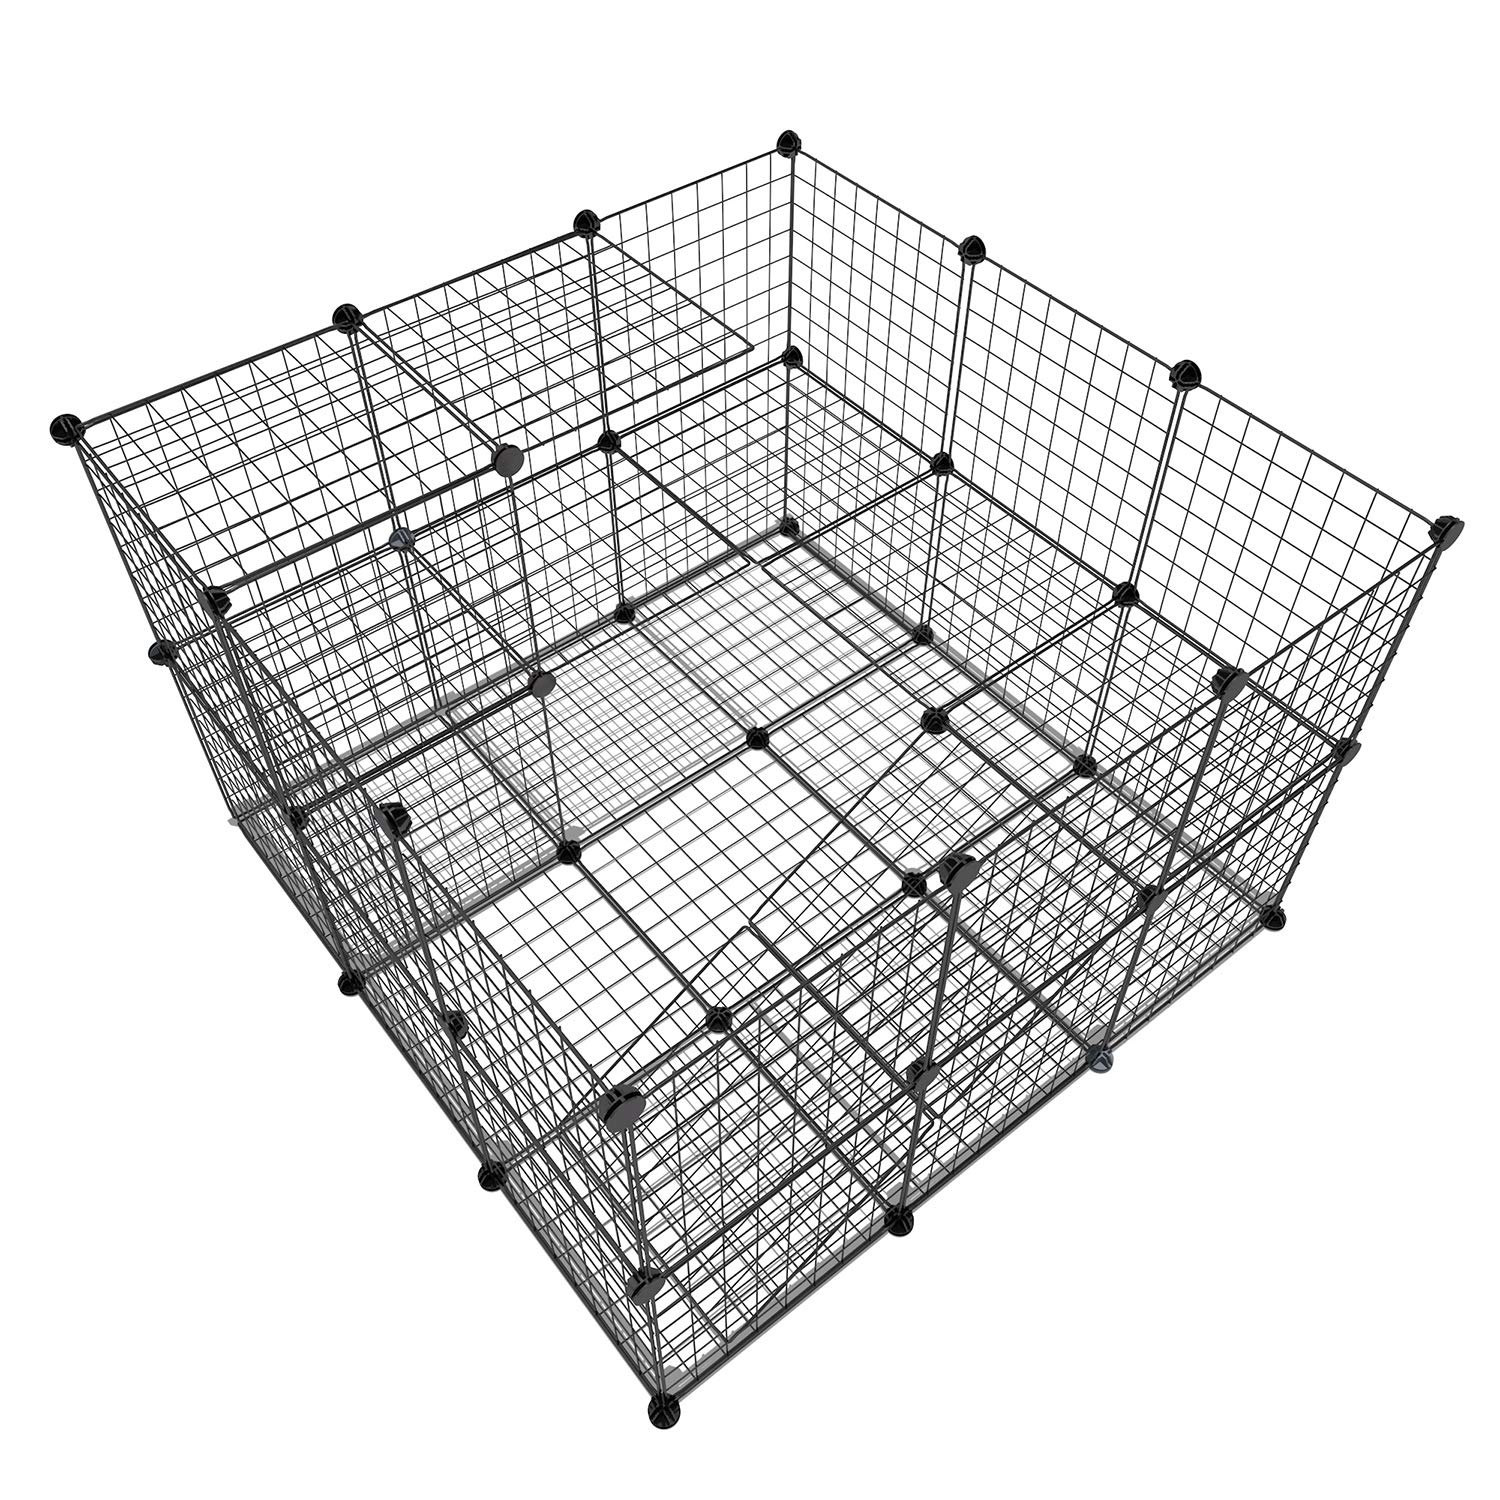 Tespo Pet Playpen, Small Animal Cage Indoor Portable Metal Wire Yard Fence for Small Animals, Guinea Pigs, Rabbits Kennel Crate Fence Tent (Black,43) by Tespo